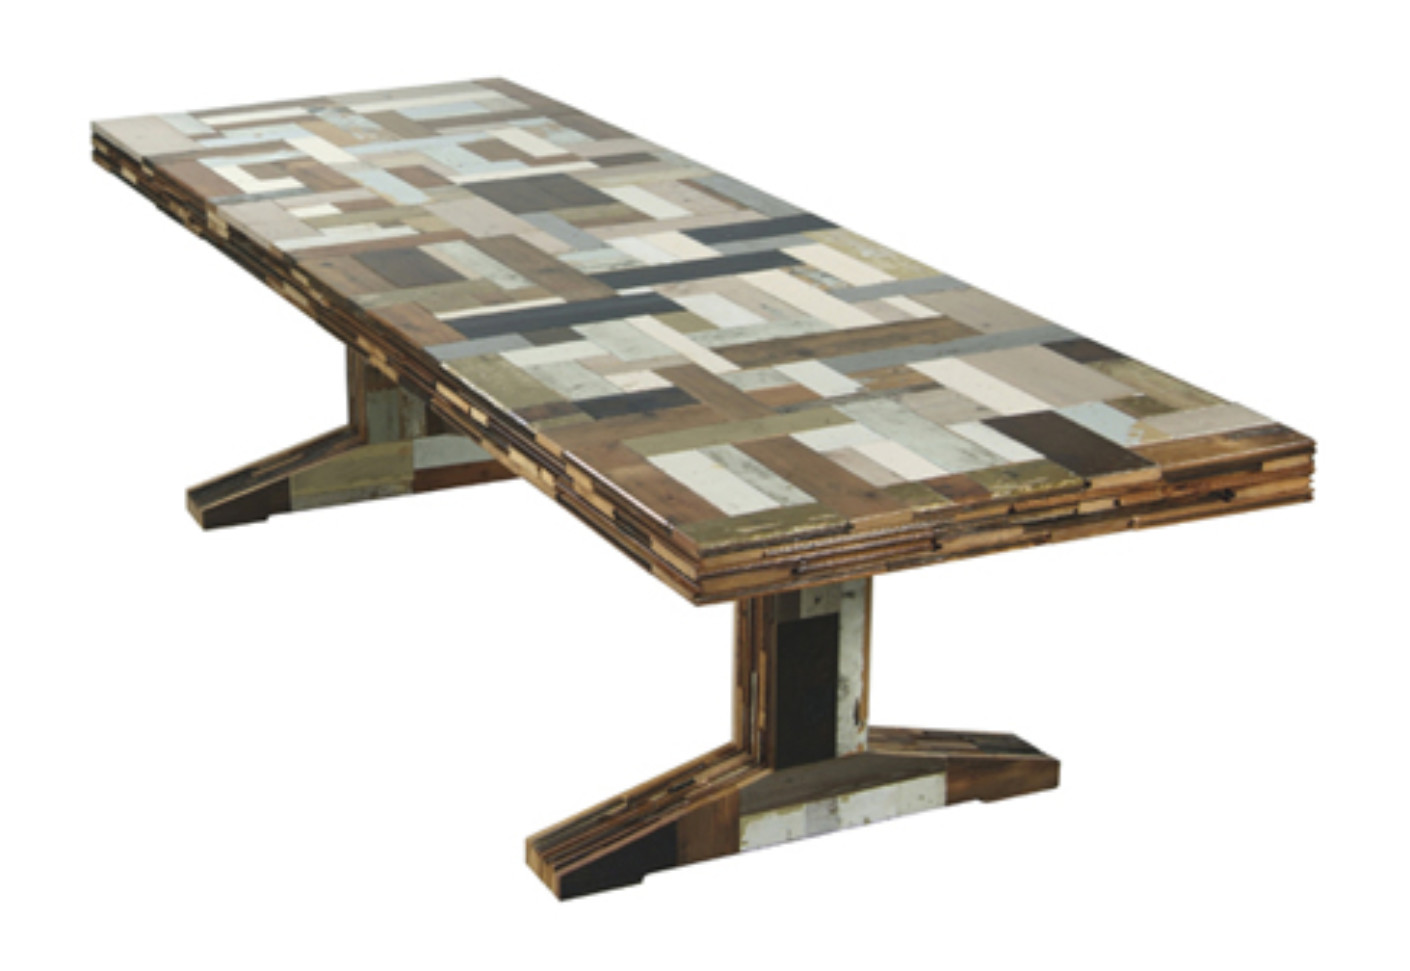 Waste Scrapwood Table By Piet Hein Eek Stylepark